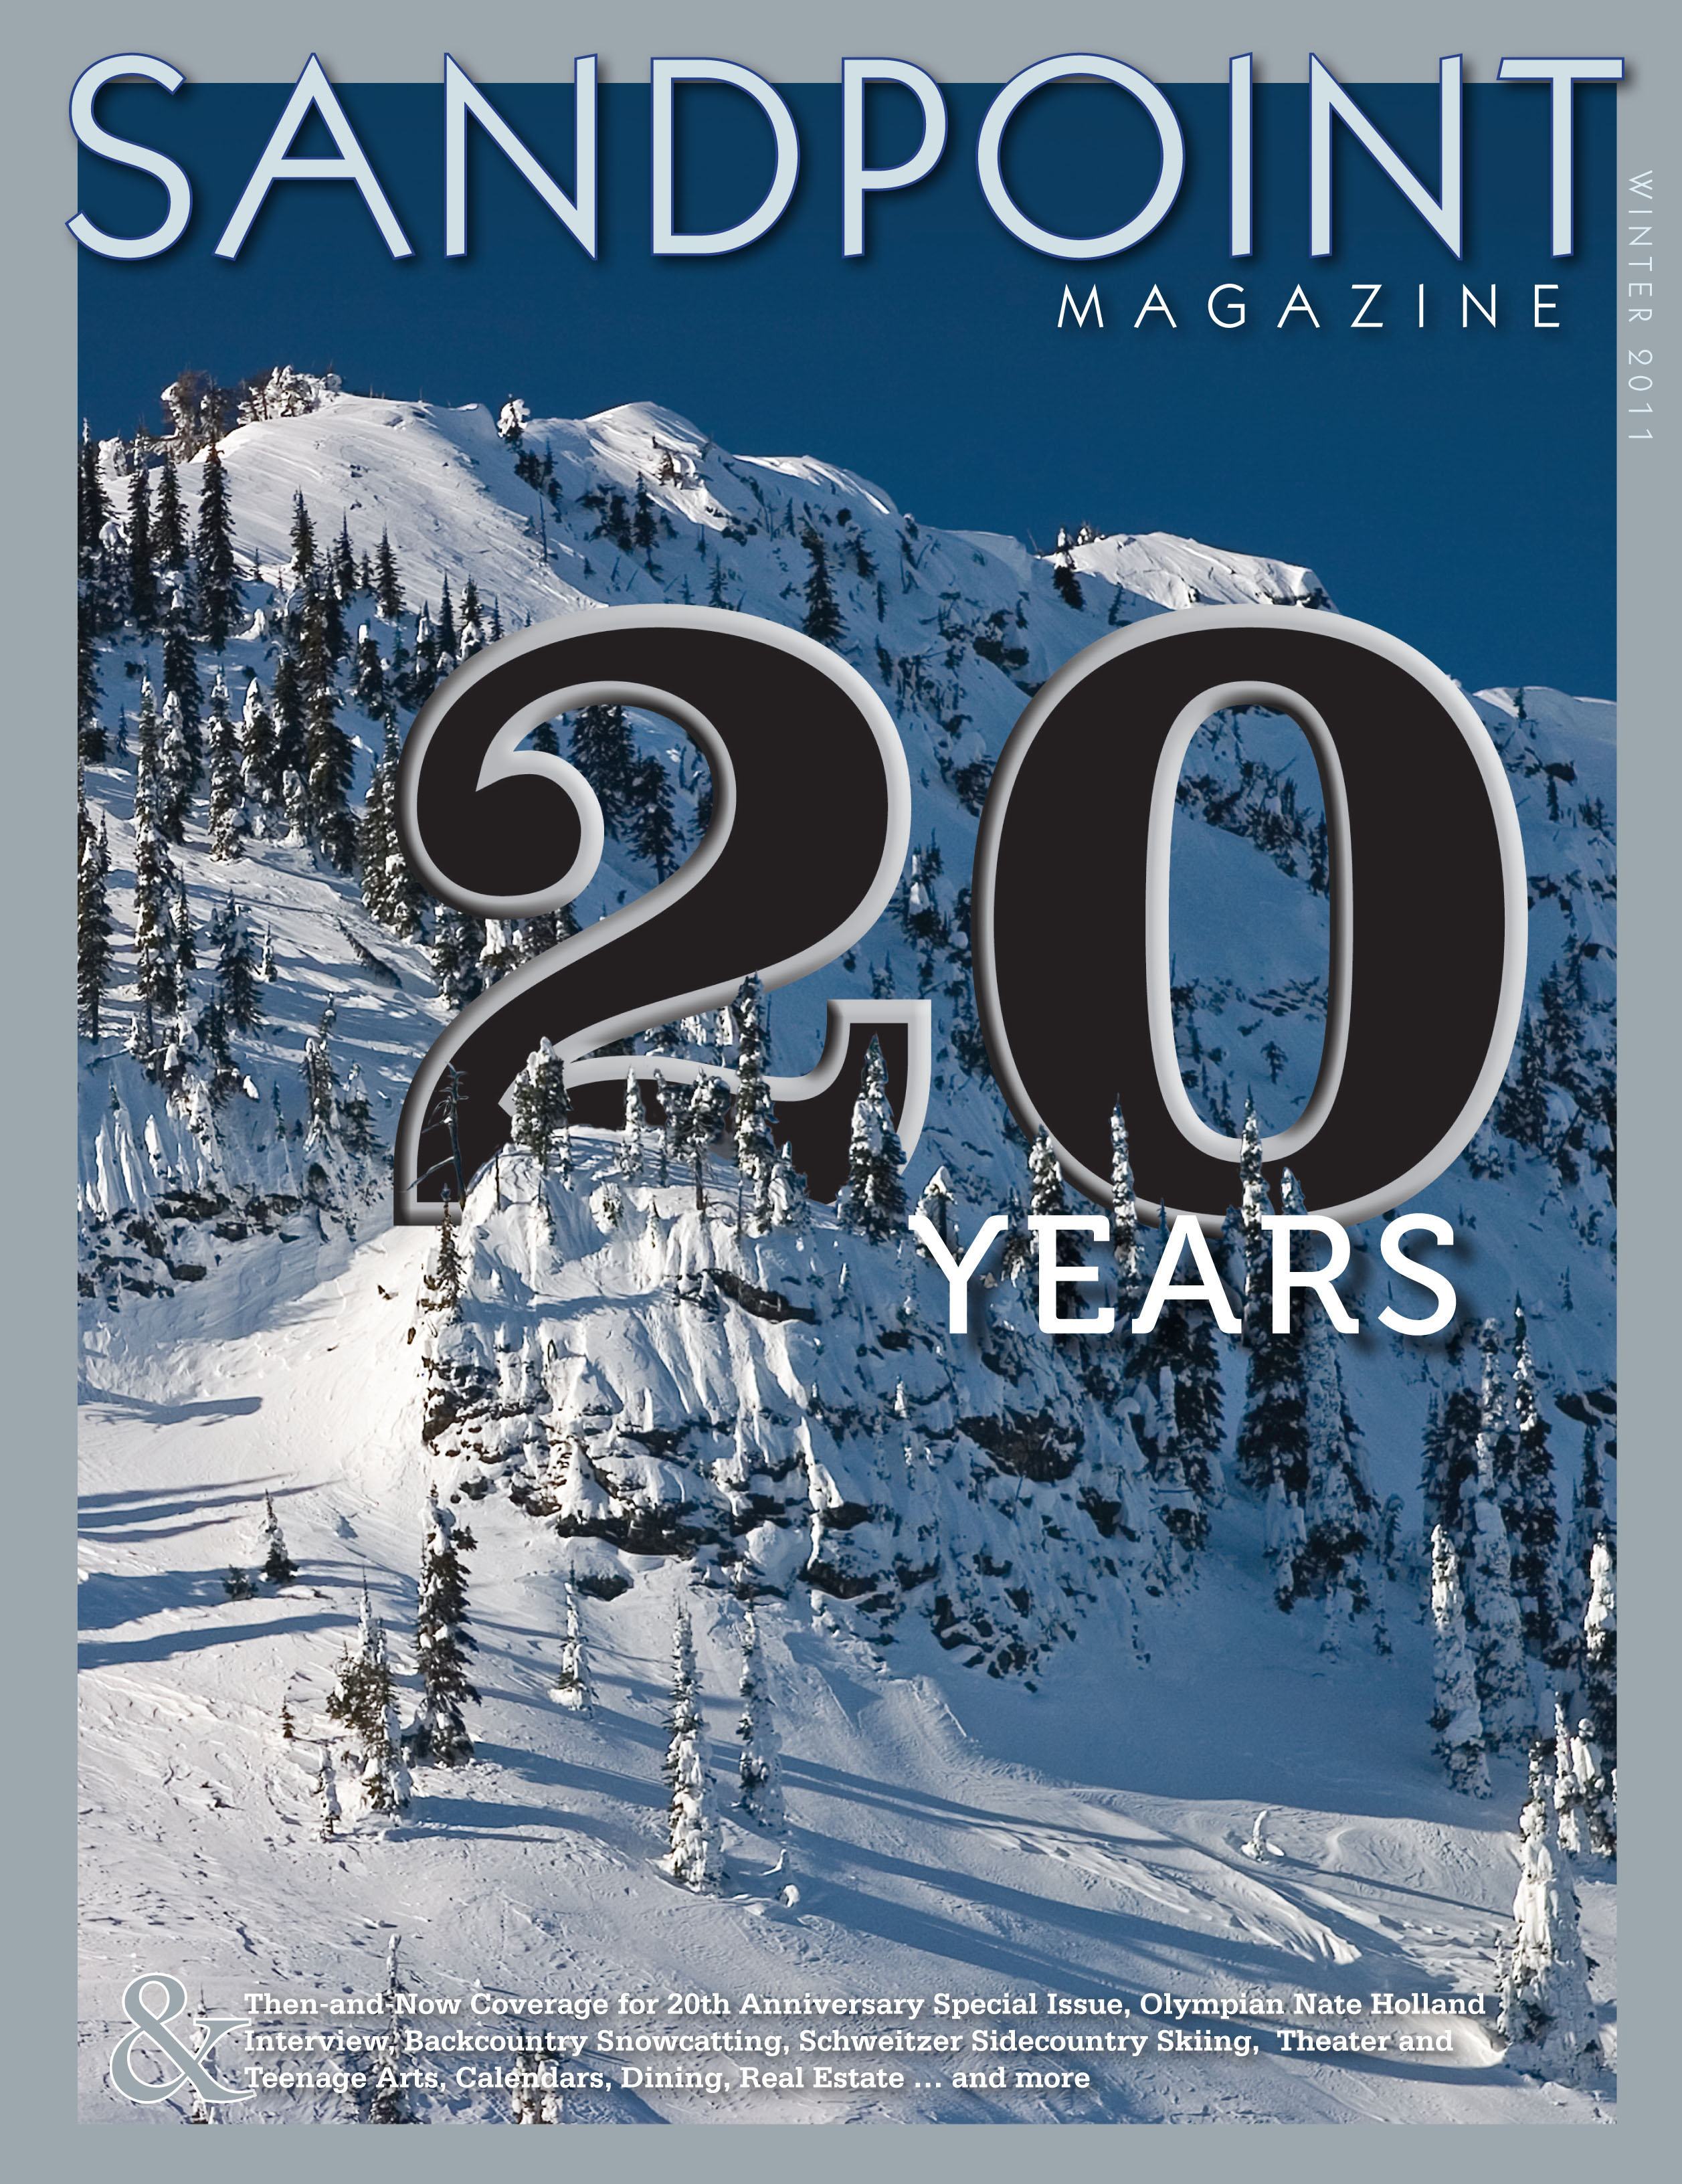 Sandpoint Magazine Winter 2011